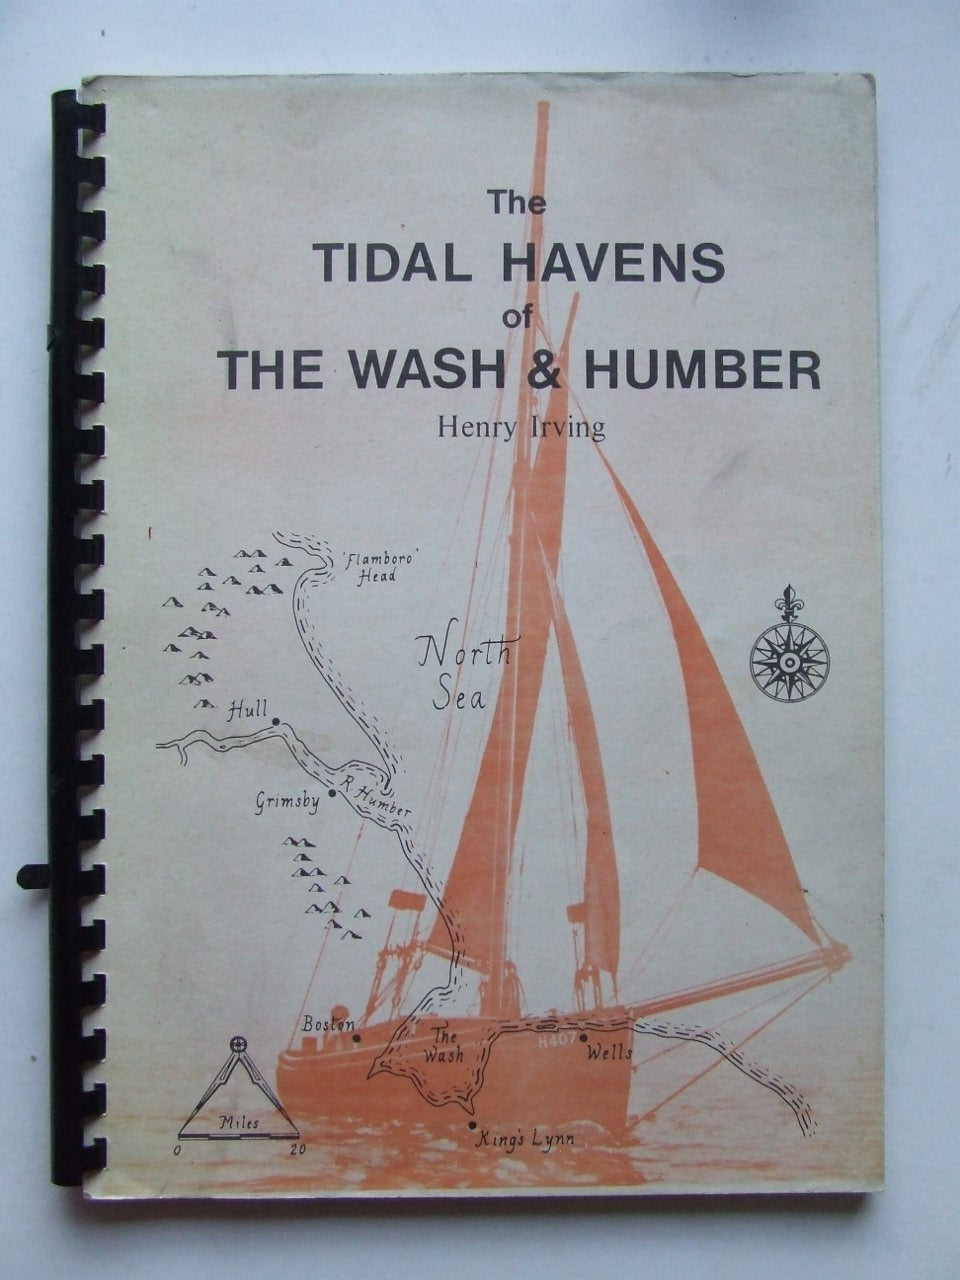 The Tidal Havens of the Wash and Humber